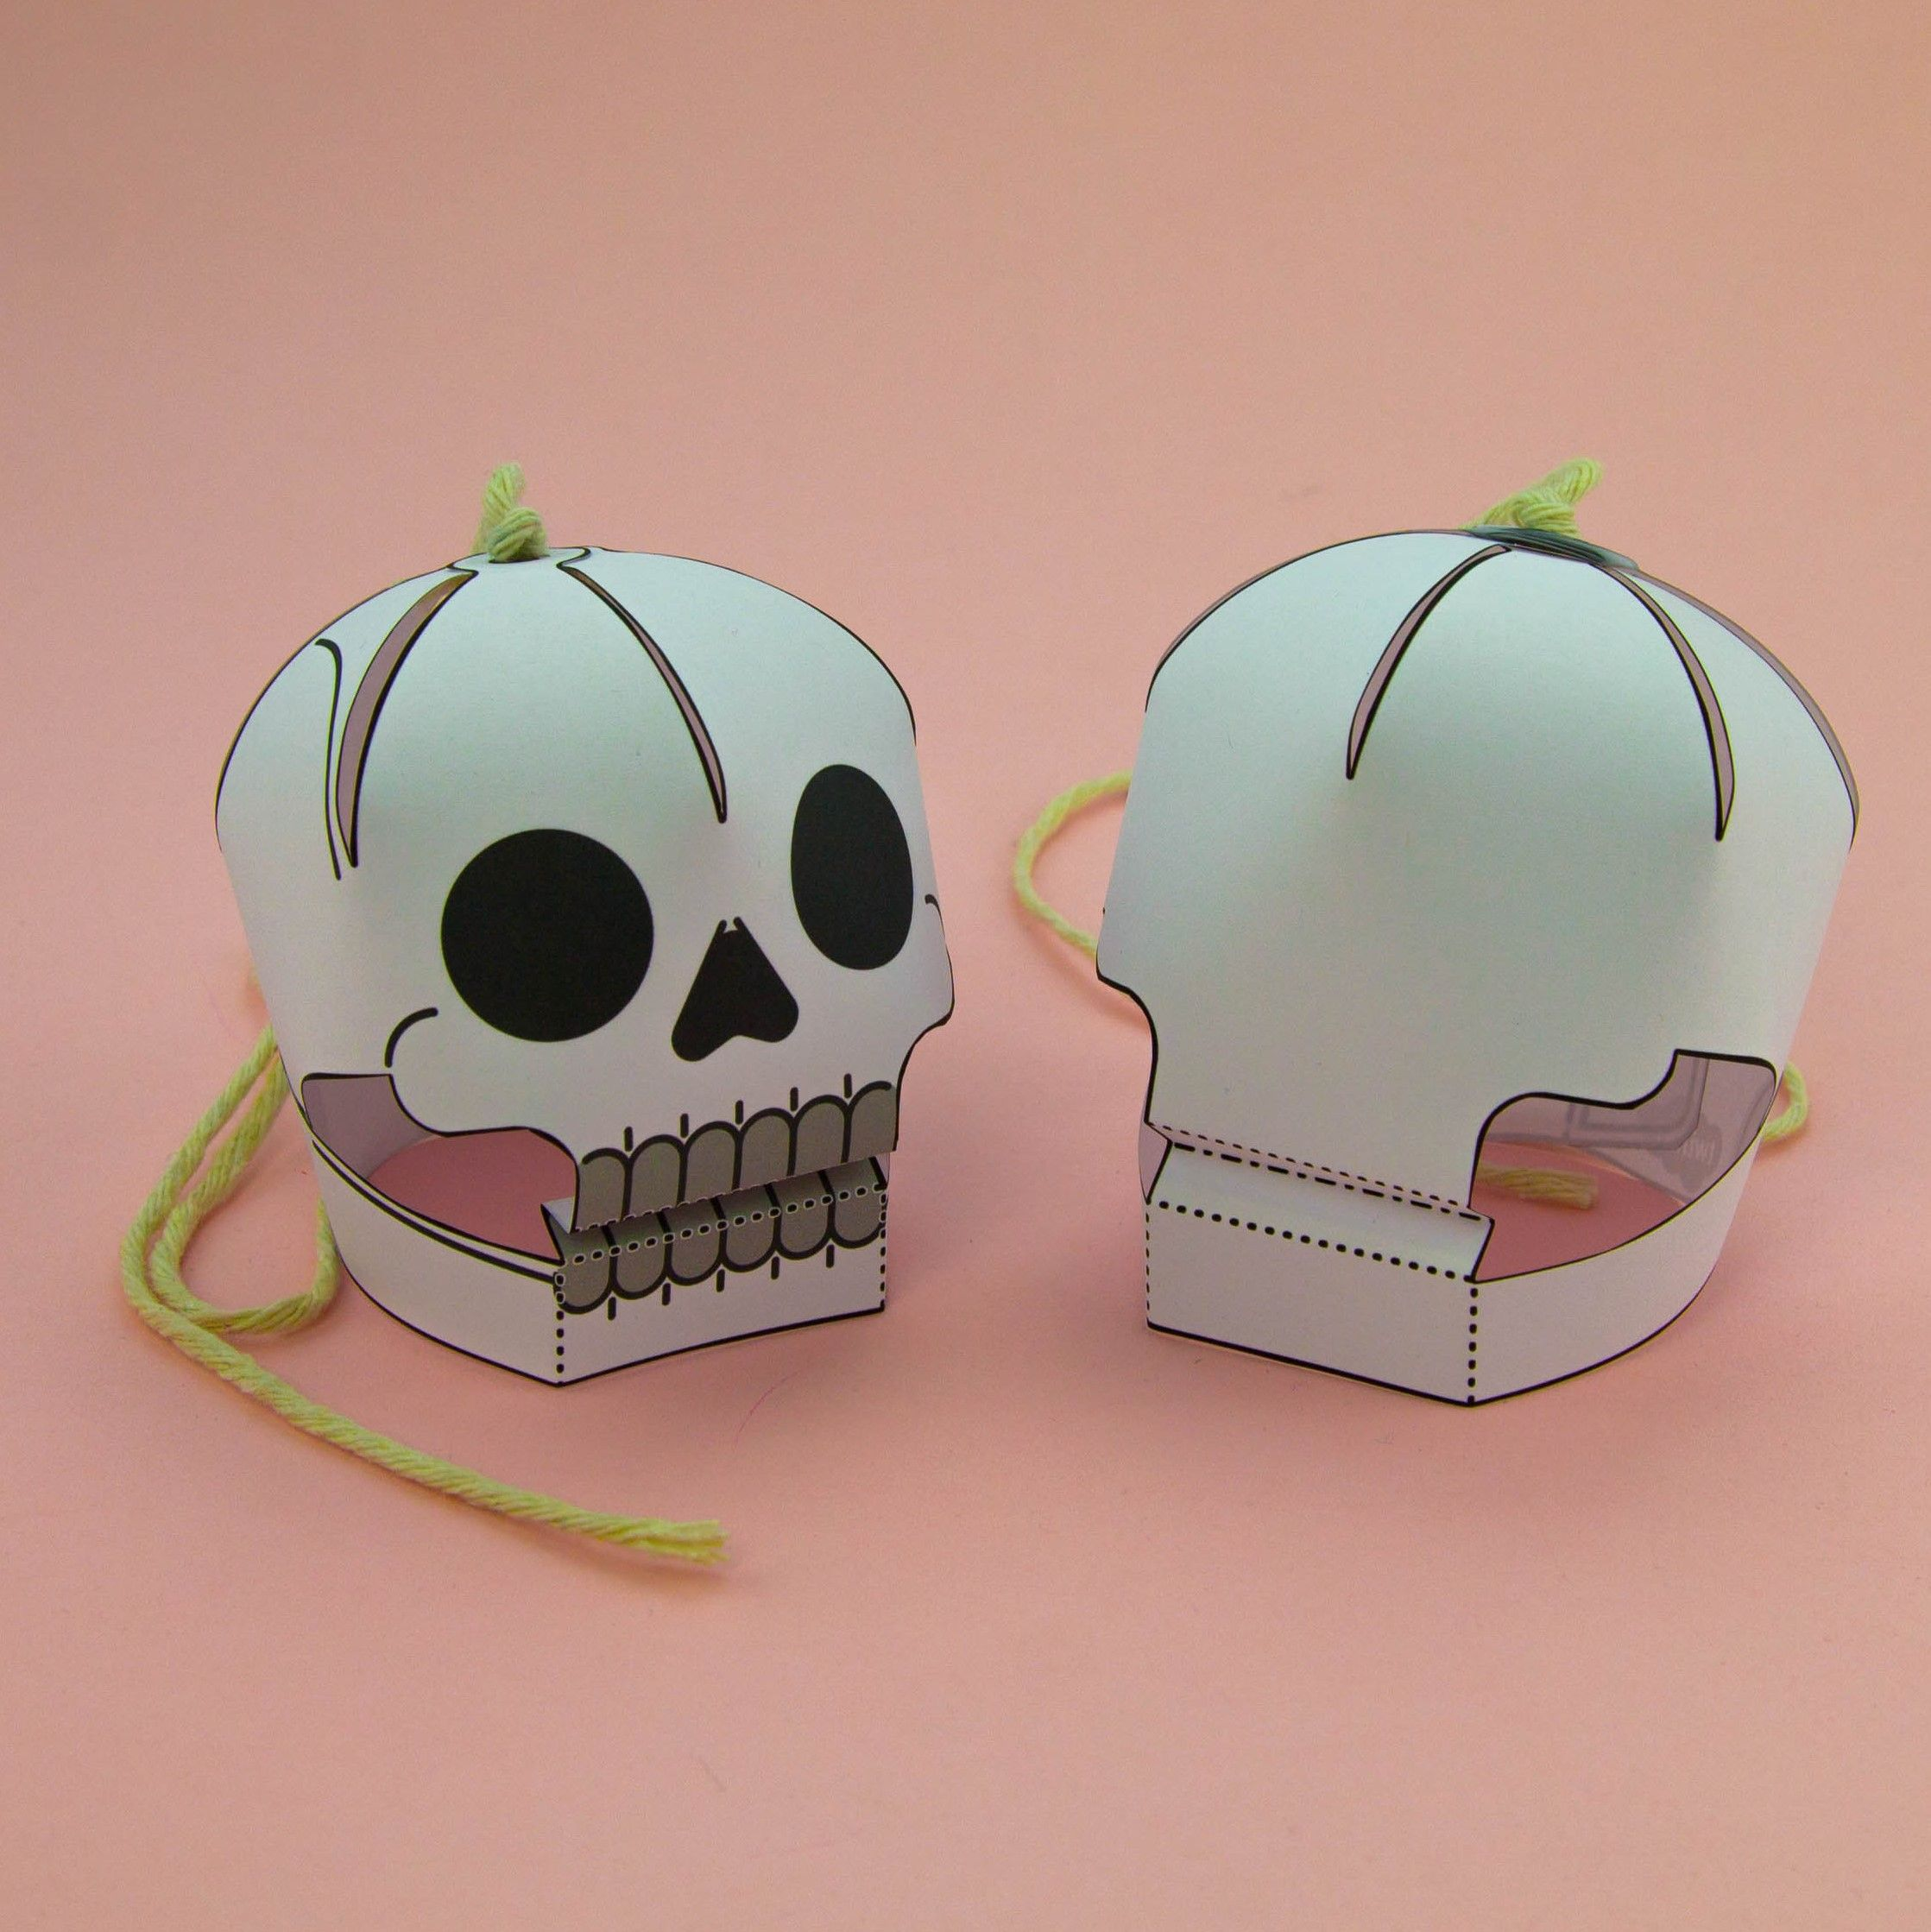 Simple 3d Halloween Skull Activity Display Paper Craft For